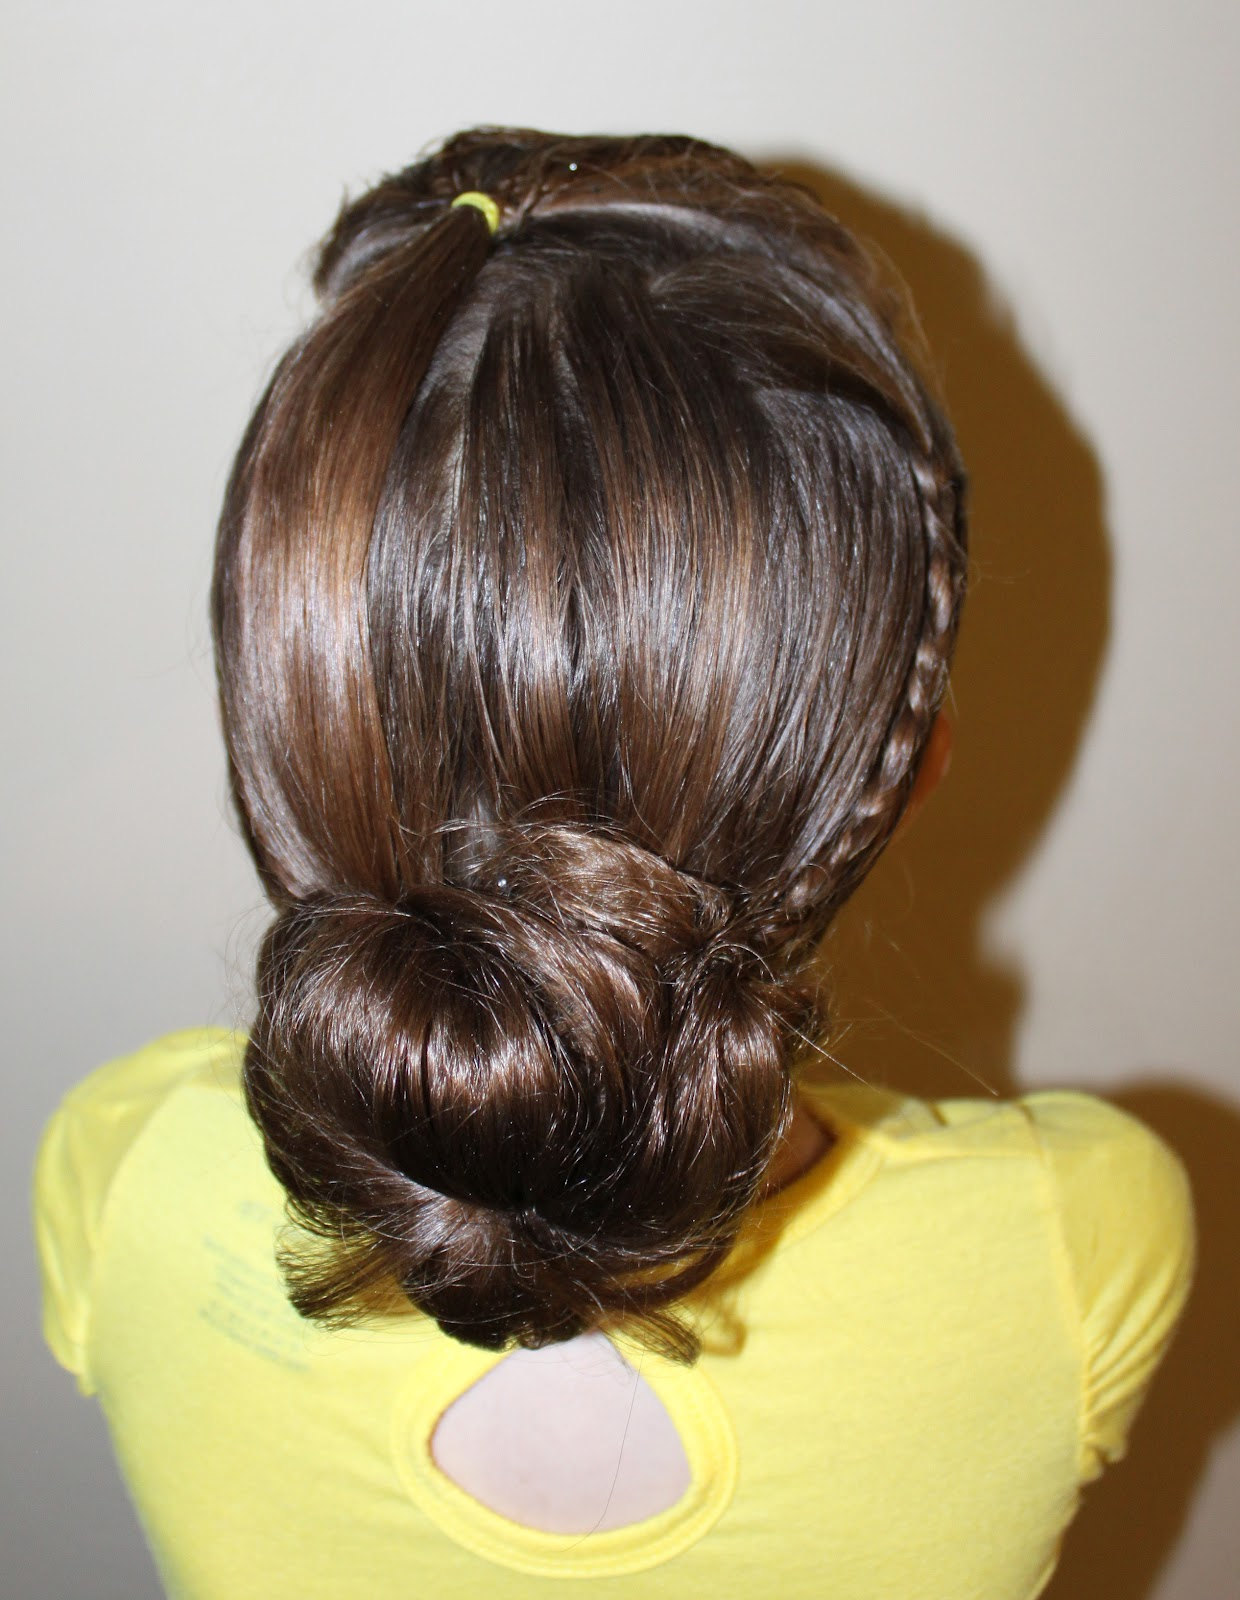 Hairstyles for Girls.. The Wright Hair: Poof Braid to Bun